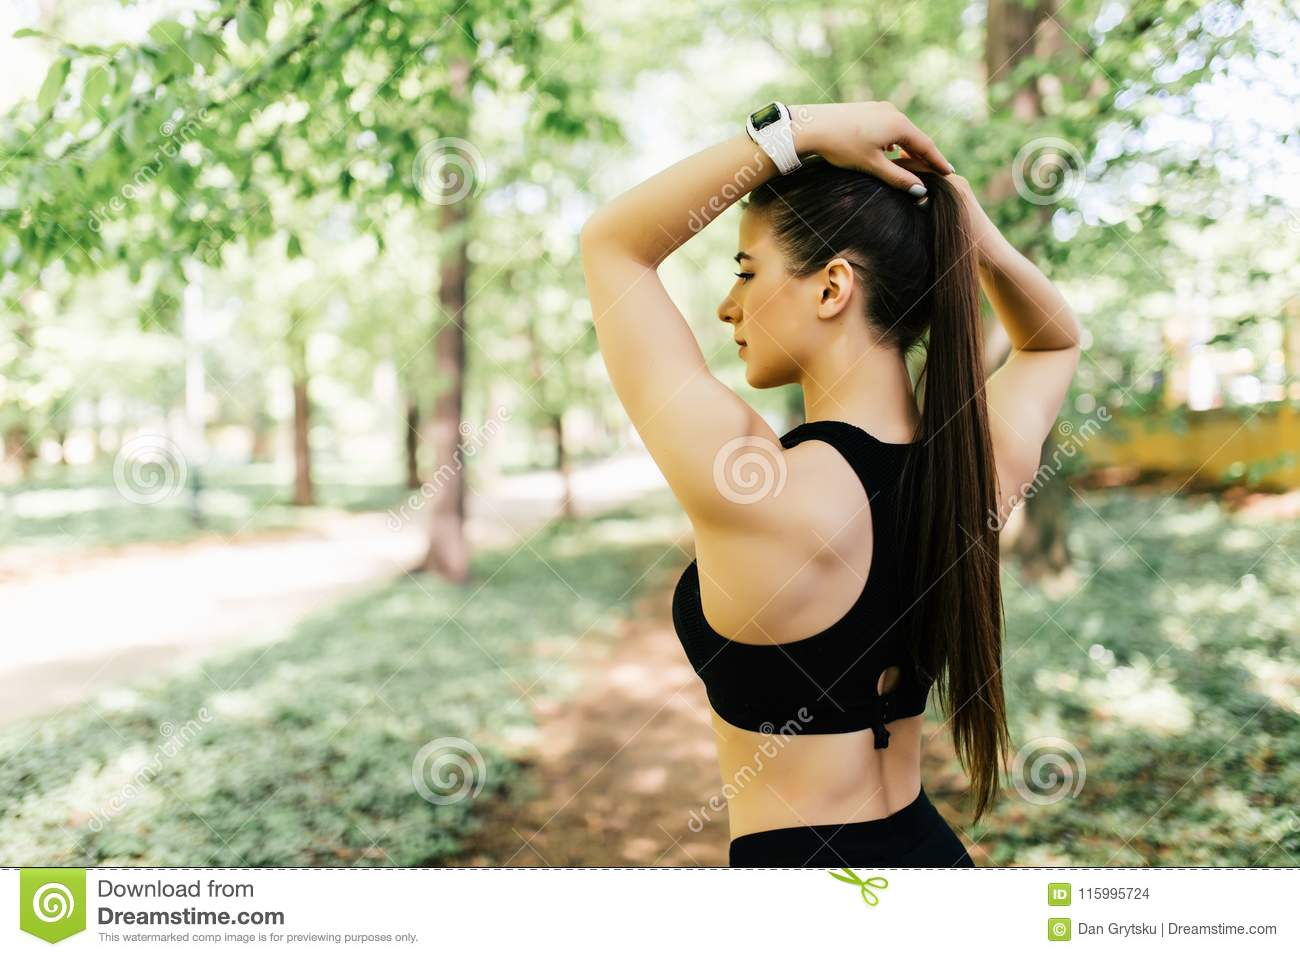 Woman tying hair in ponytail getting ready for exercising in park. Beautiful young sporty woman attaching her long hair in park. S